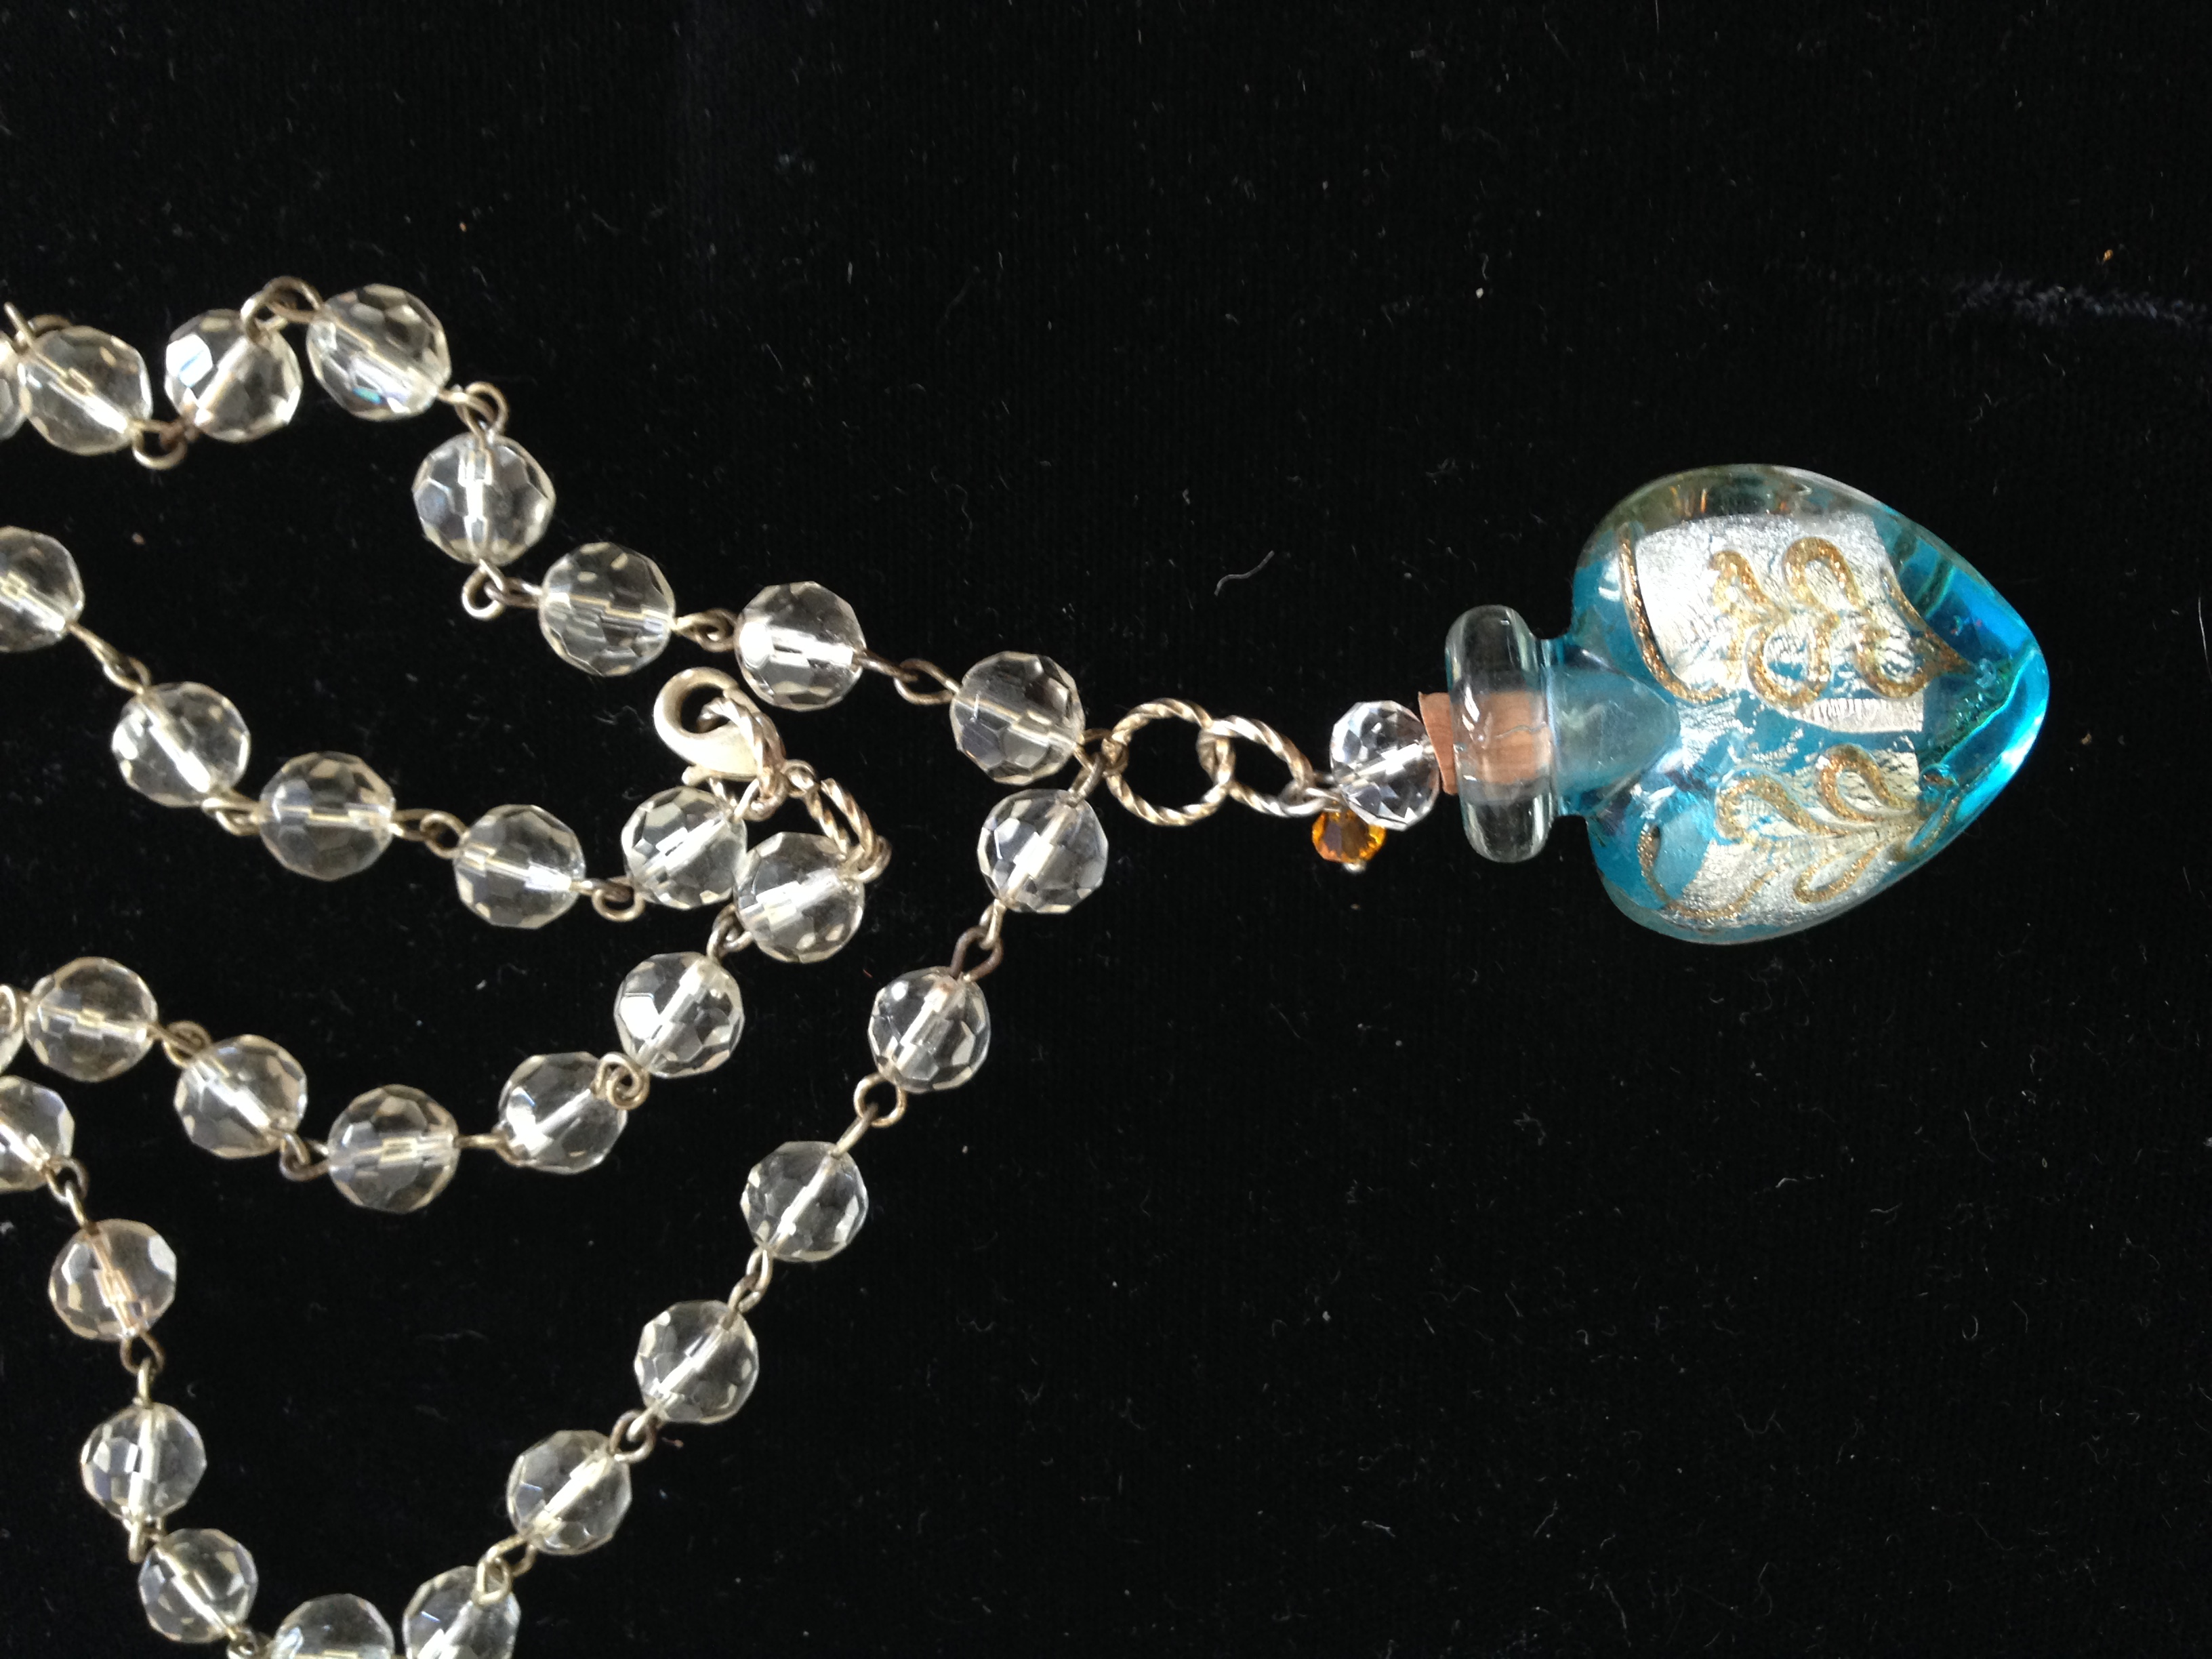 Heart-Shaped Glass Bottle & Crystal Necklace